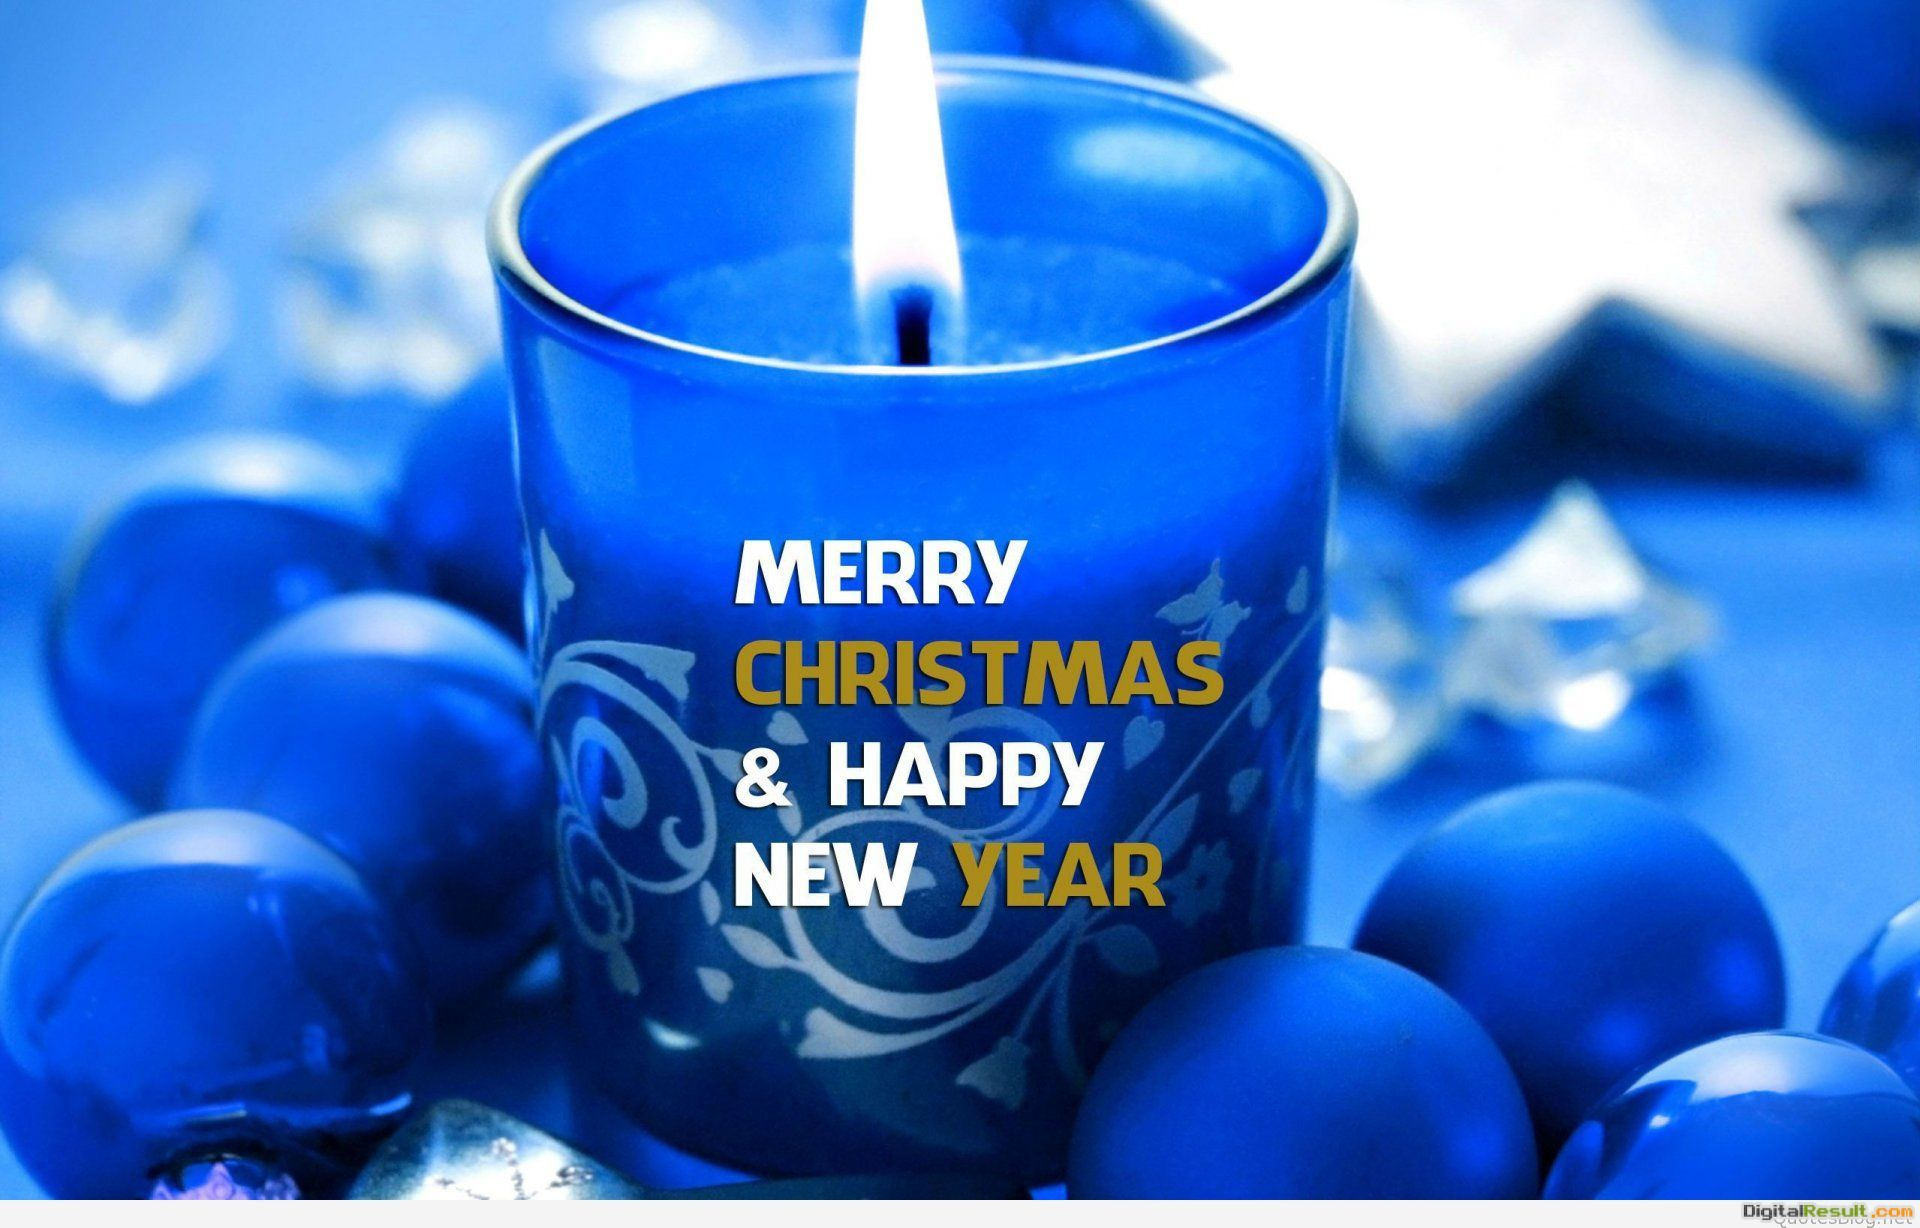 merry christmas happy new year candle light blue balls bokeh 1920x1200 1618